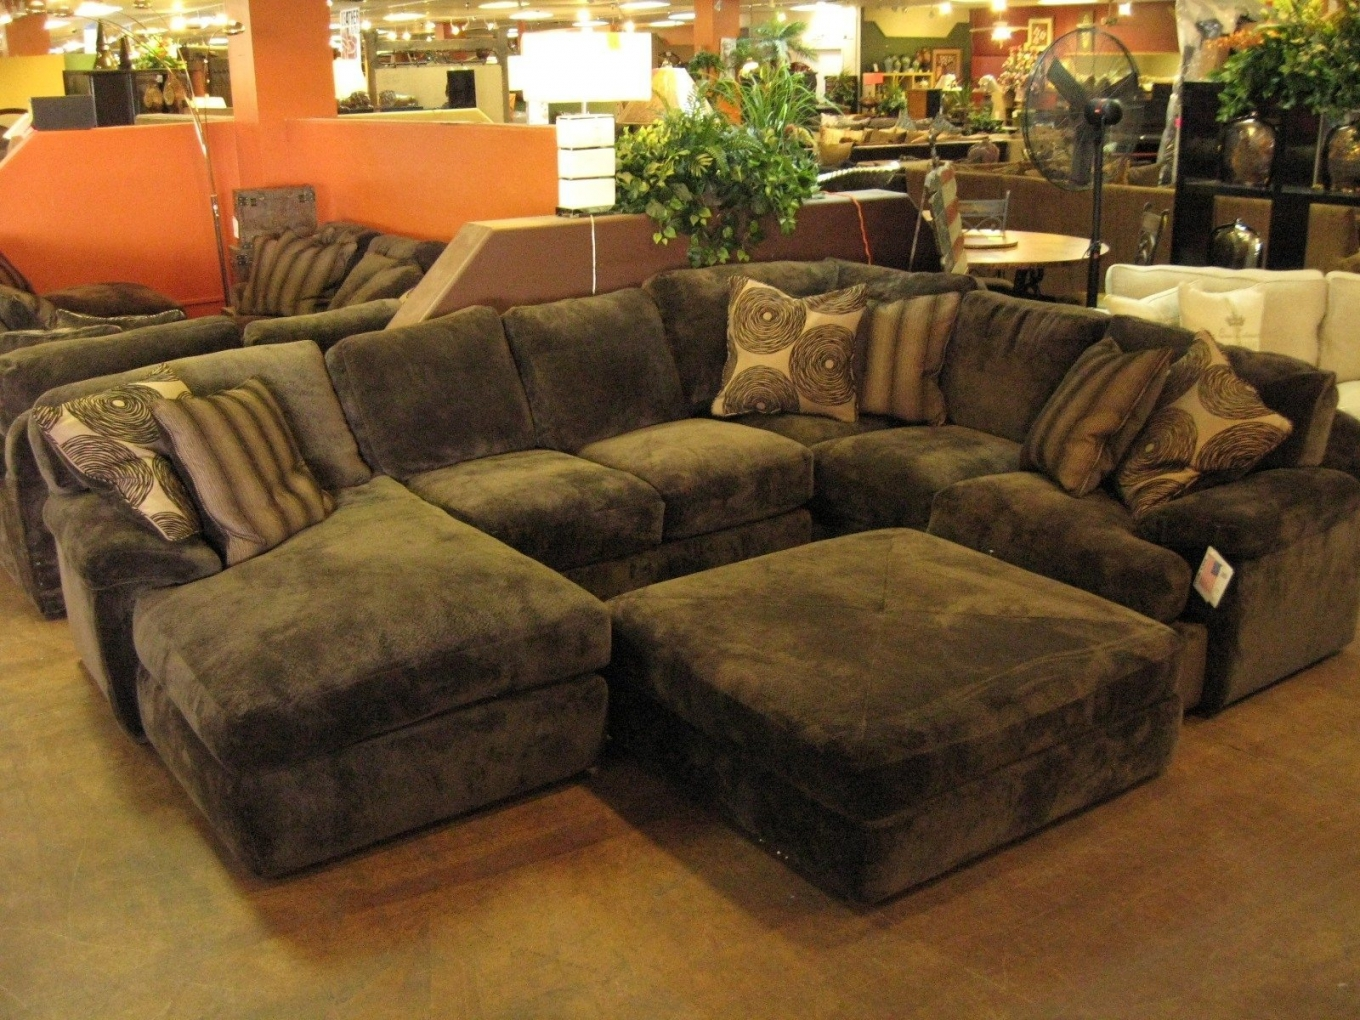 Comfortable Sectional Sofa With Comfortable Sectional Sofa (#6 of 12) : comfortable sectional sofas - Sectionals, Sofas & Couches